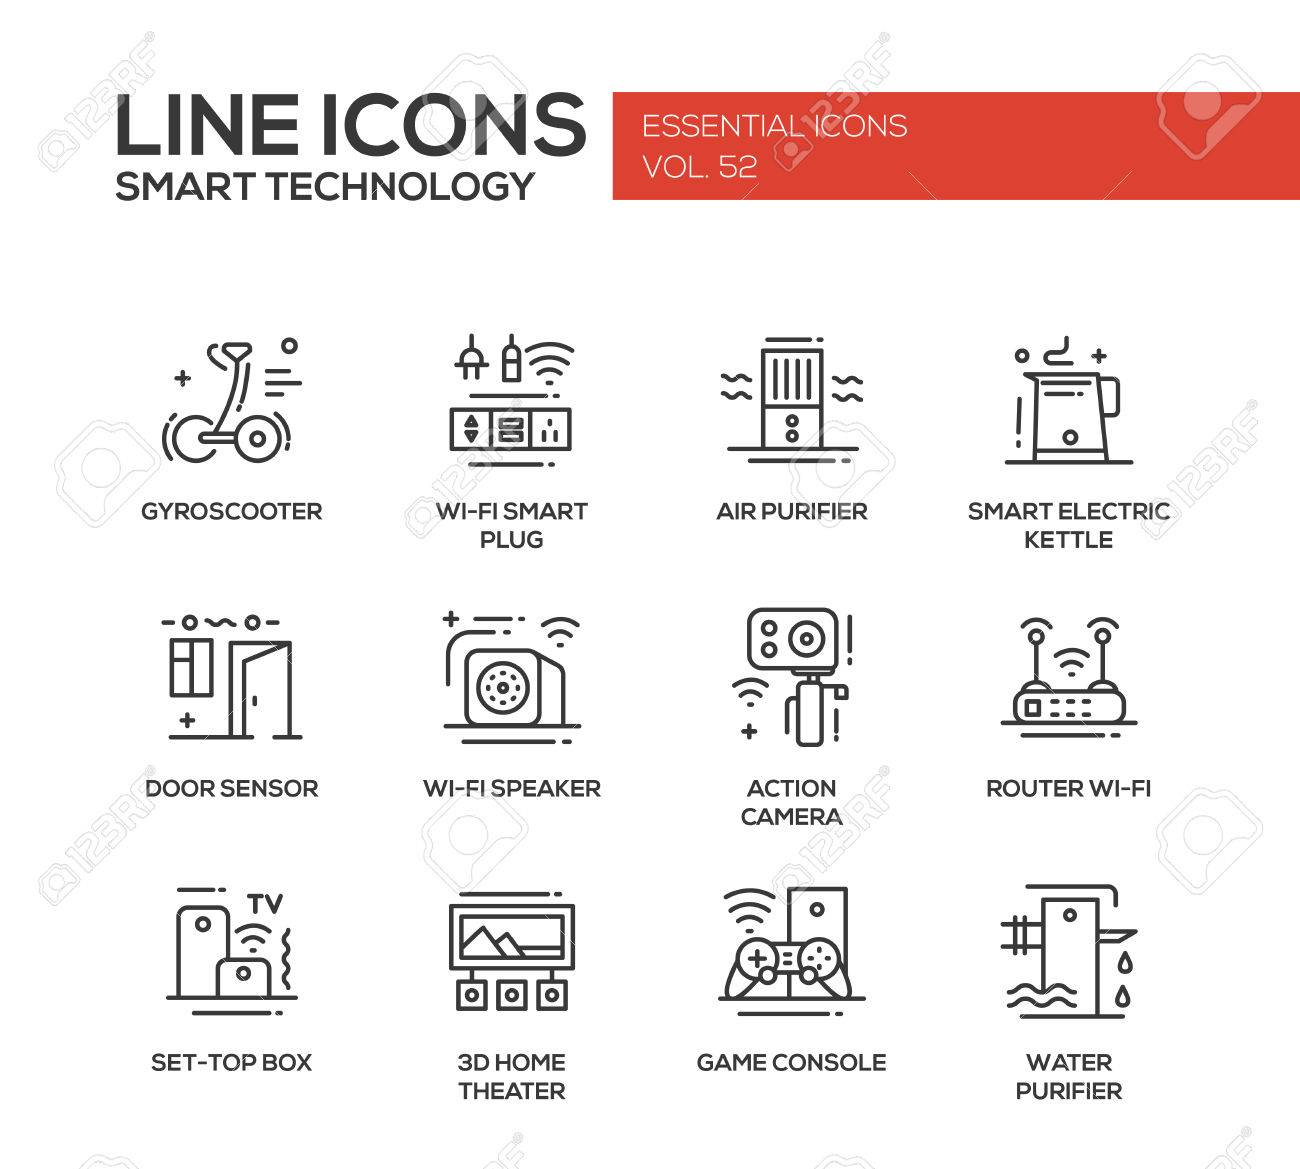 Appliance wiring diagram symbols refrigeration wiring diagram smart technology modern vector plain line design icons and rh 123rf com architectural symbols for electricians appliance wiring diagram asfbconference2016 Choice Image